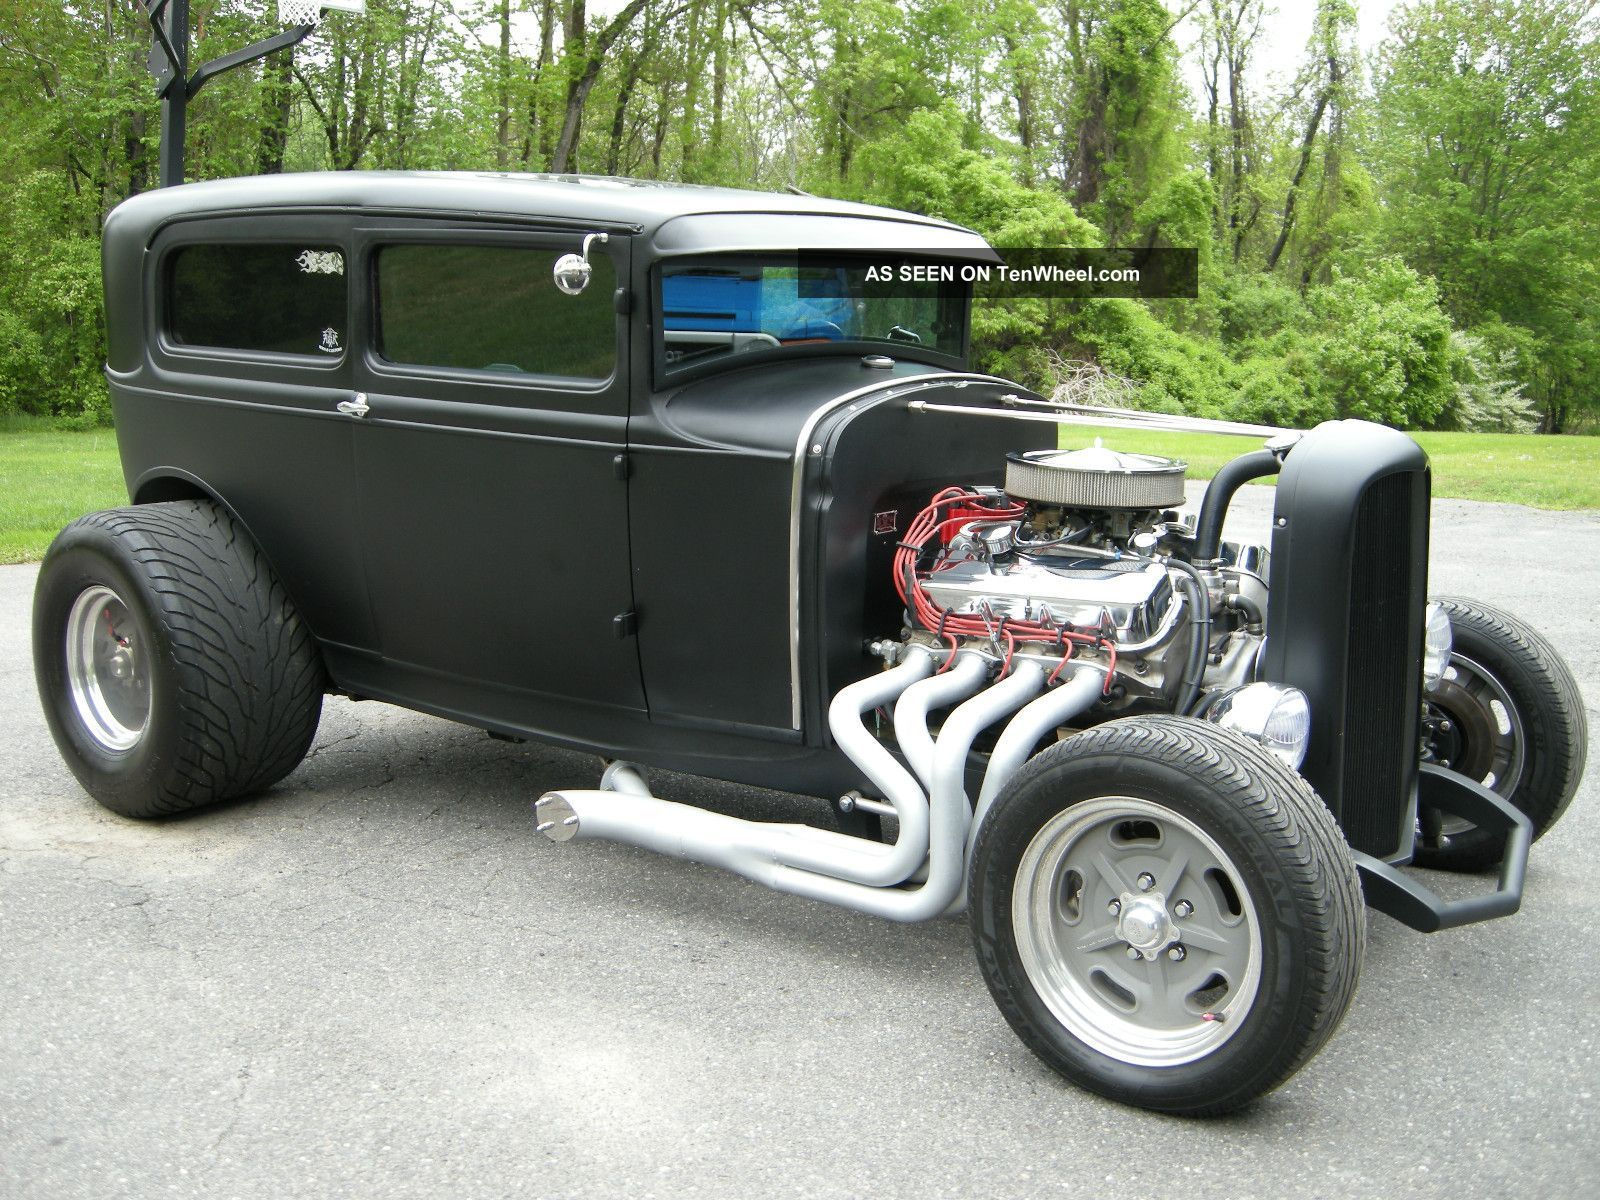 images of ford hot rod trucks | 1930 Ford "|1600|1200|?|62d5c8c97d518bb74a2d8dd9b0e7e86a|False|UNSURE|0.33597108721733093